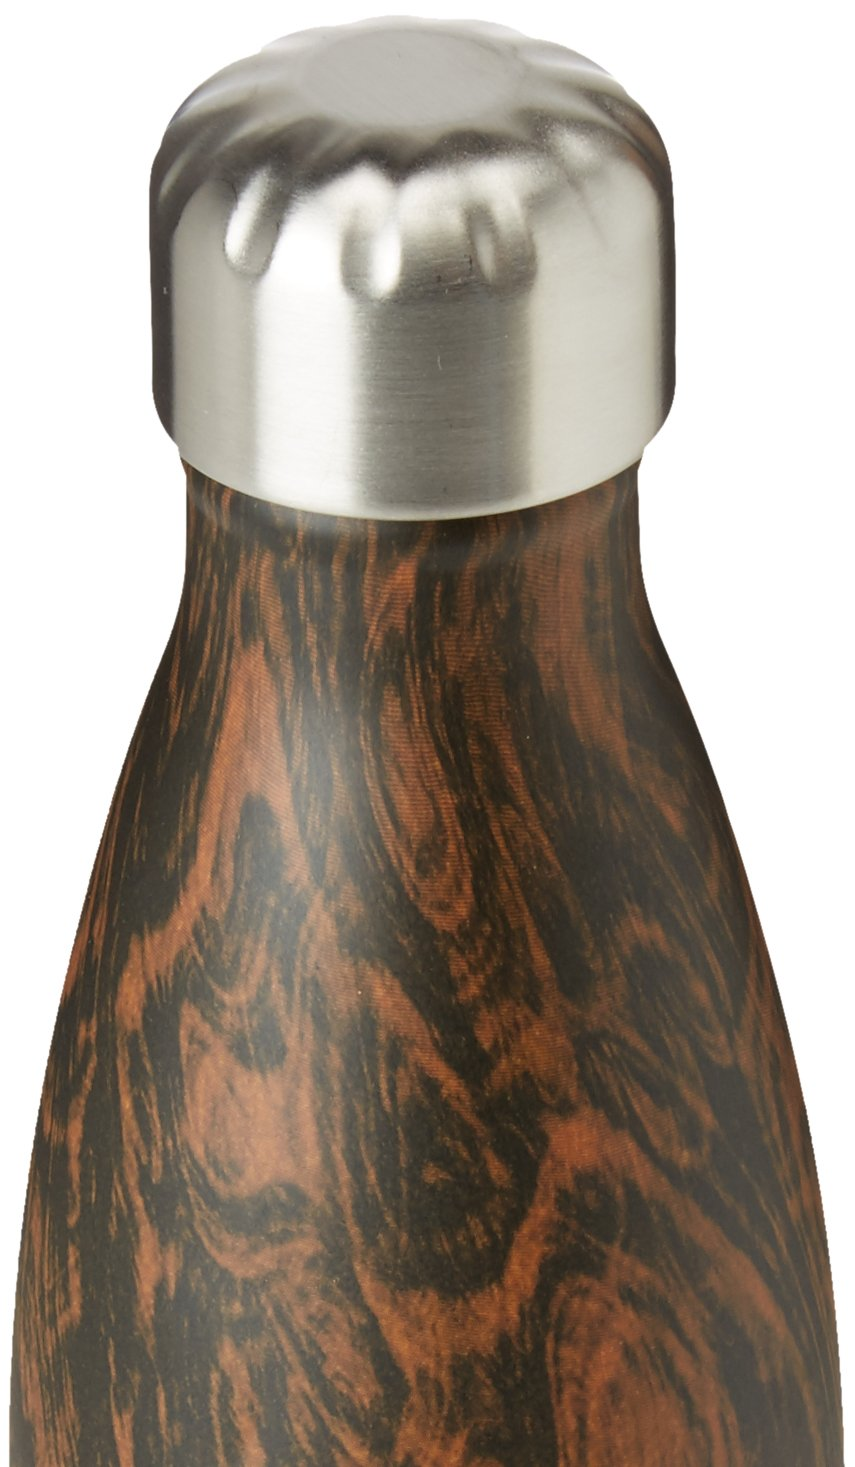 S'well Vacuum Insulated Stainless Steel Water Bottle, 17 oz, Wenge Wood by S'well (Image #3)